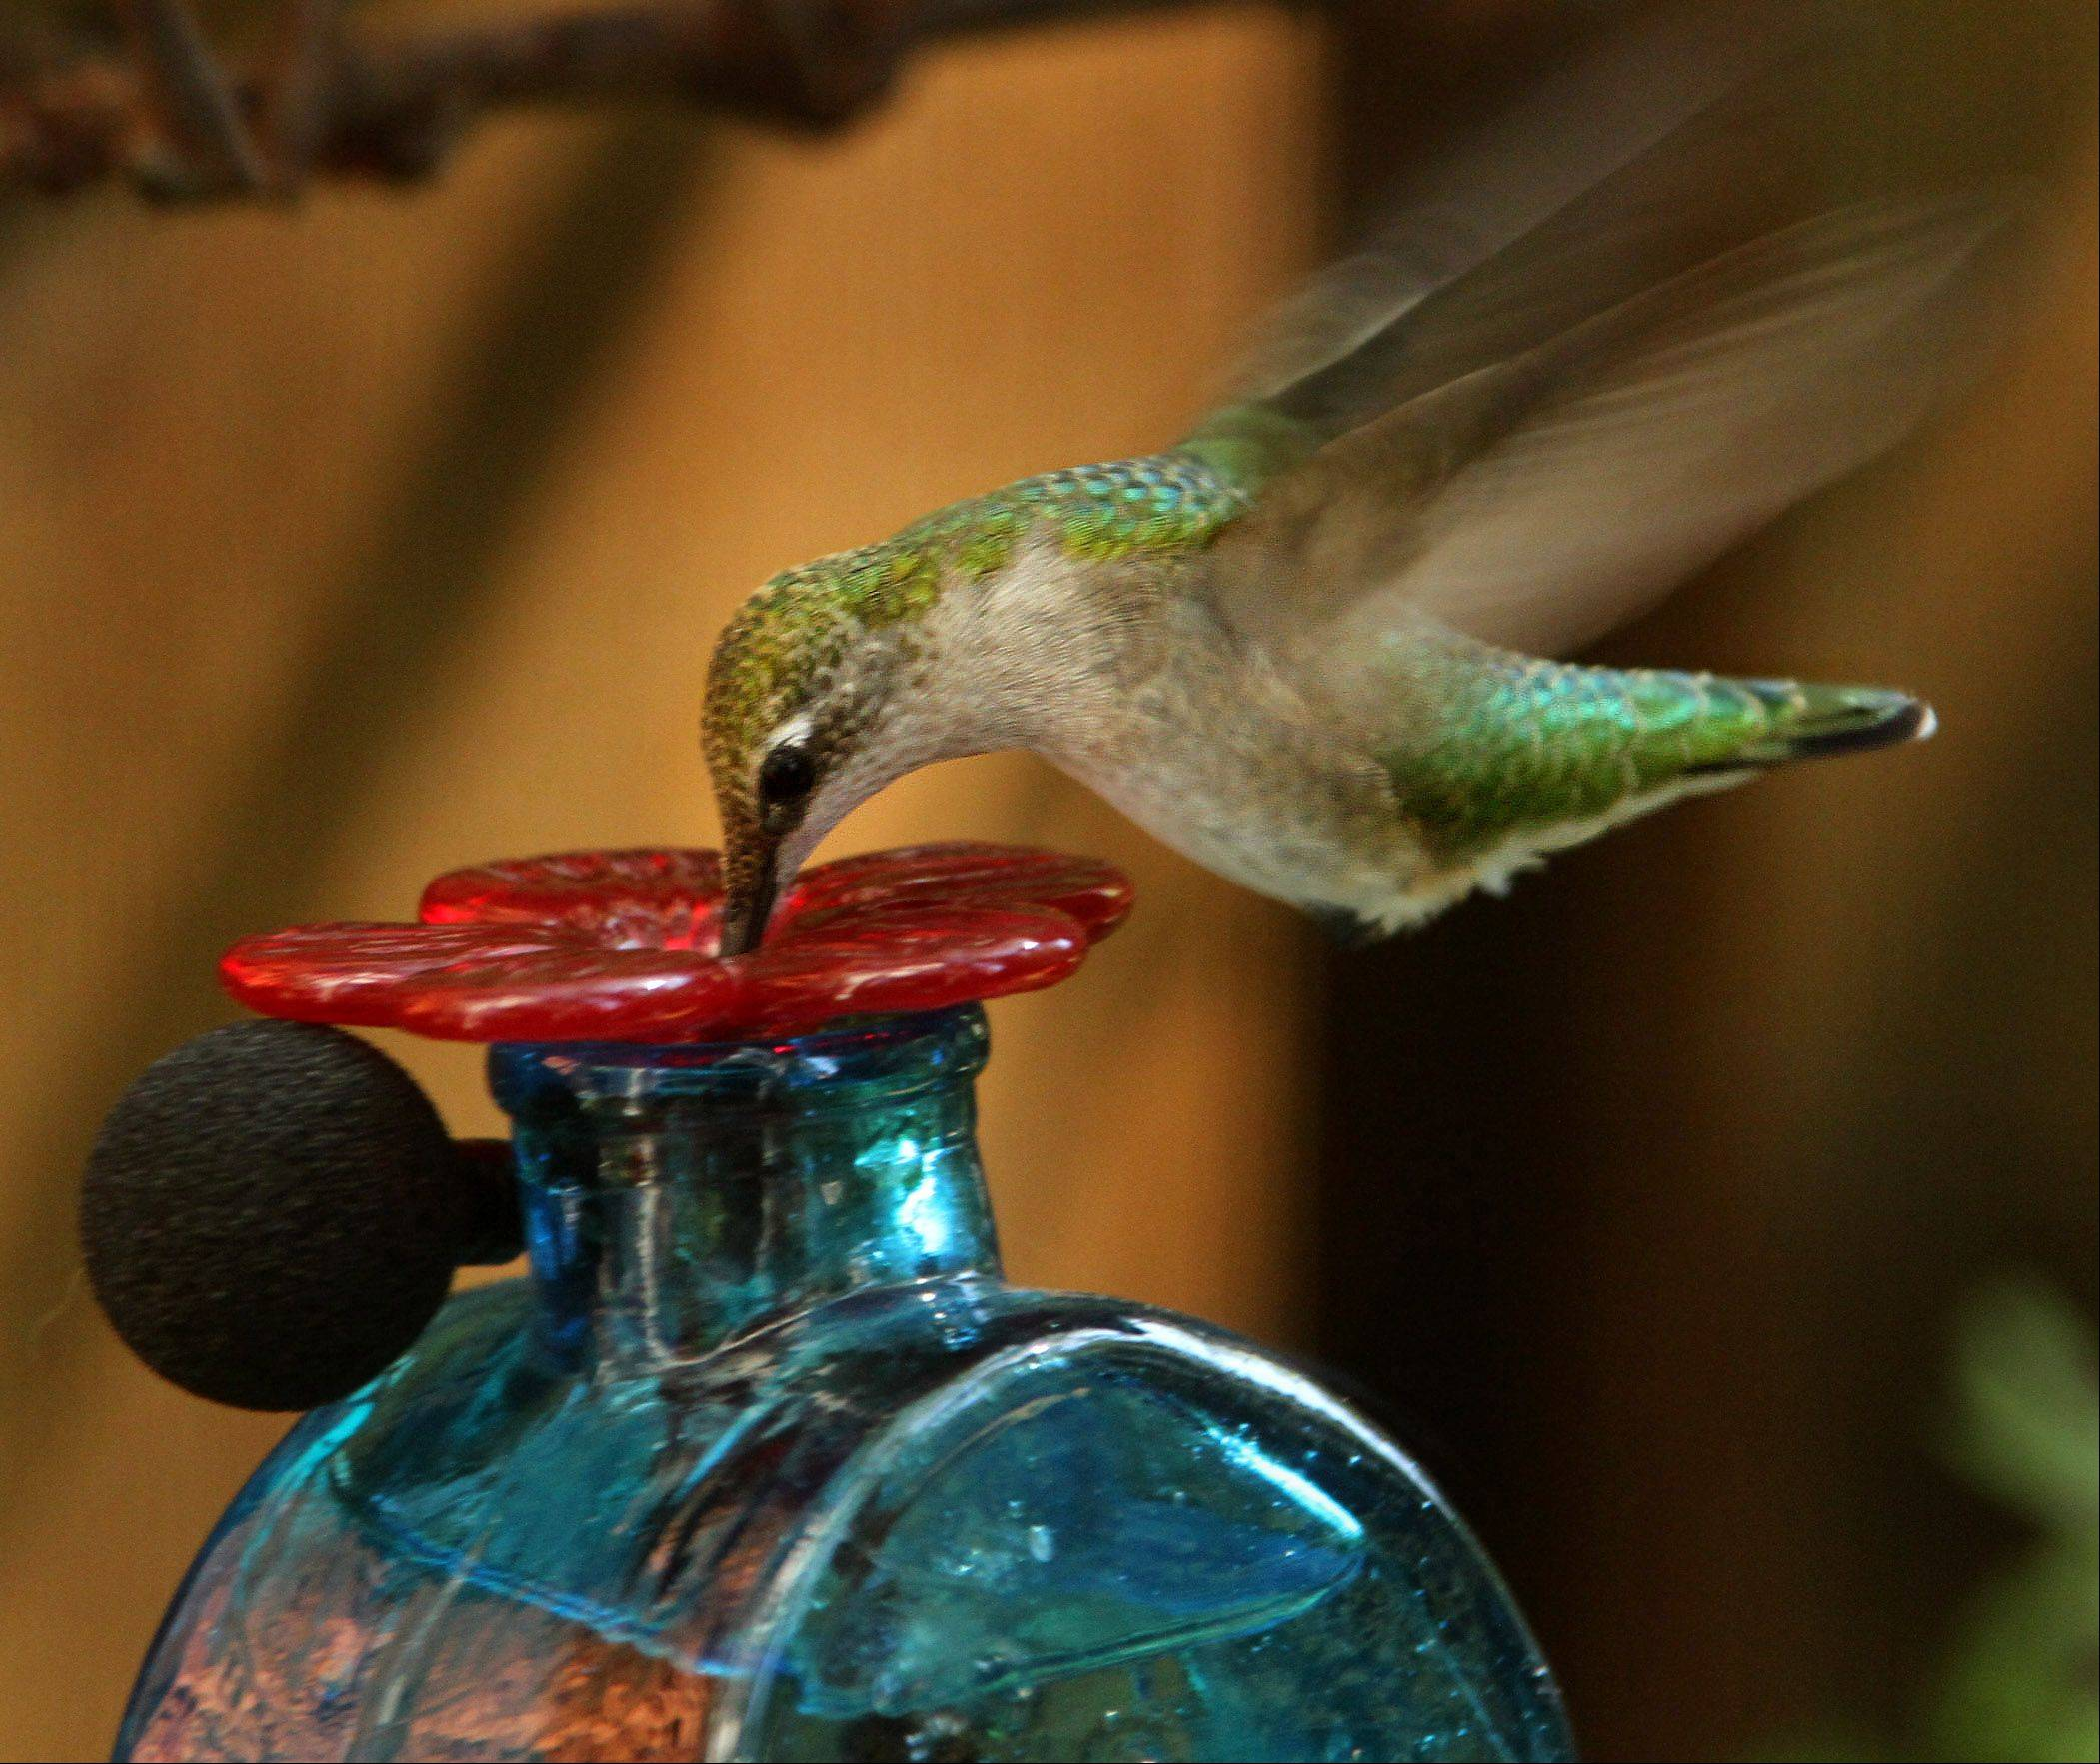 A ruby-throated hummingbird feeds from a feeder.